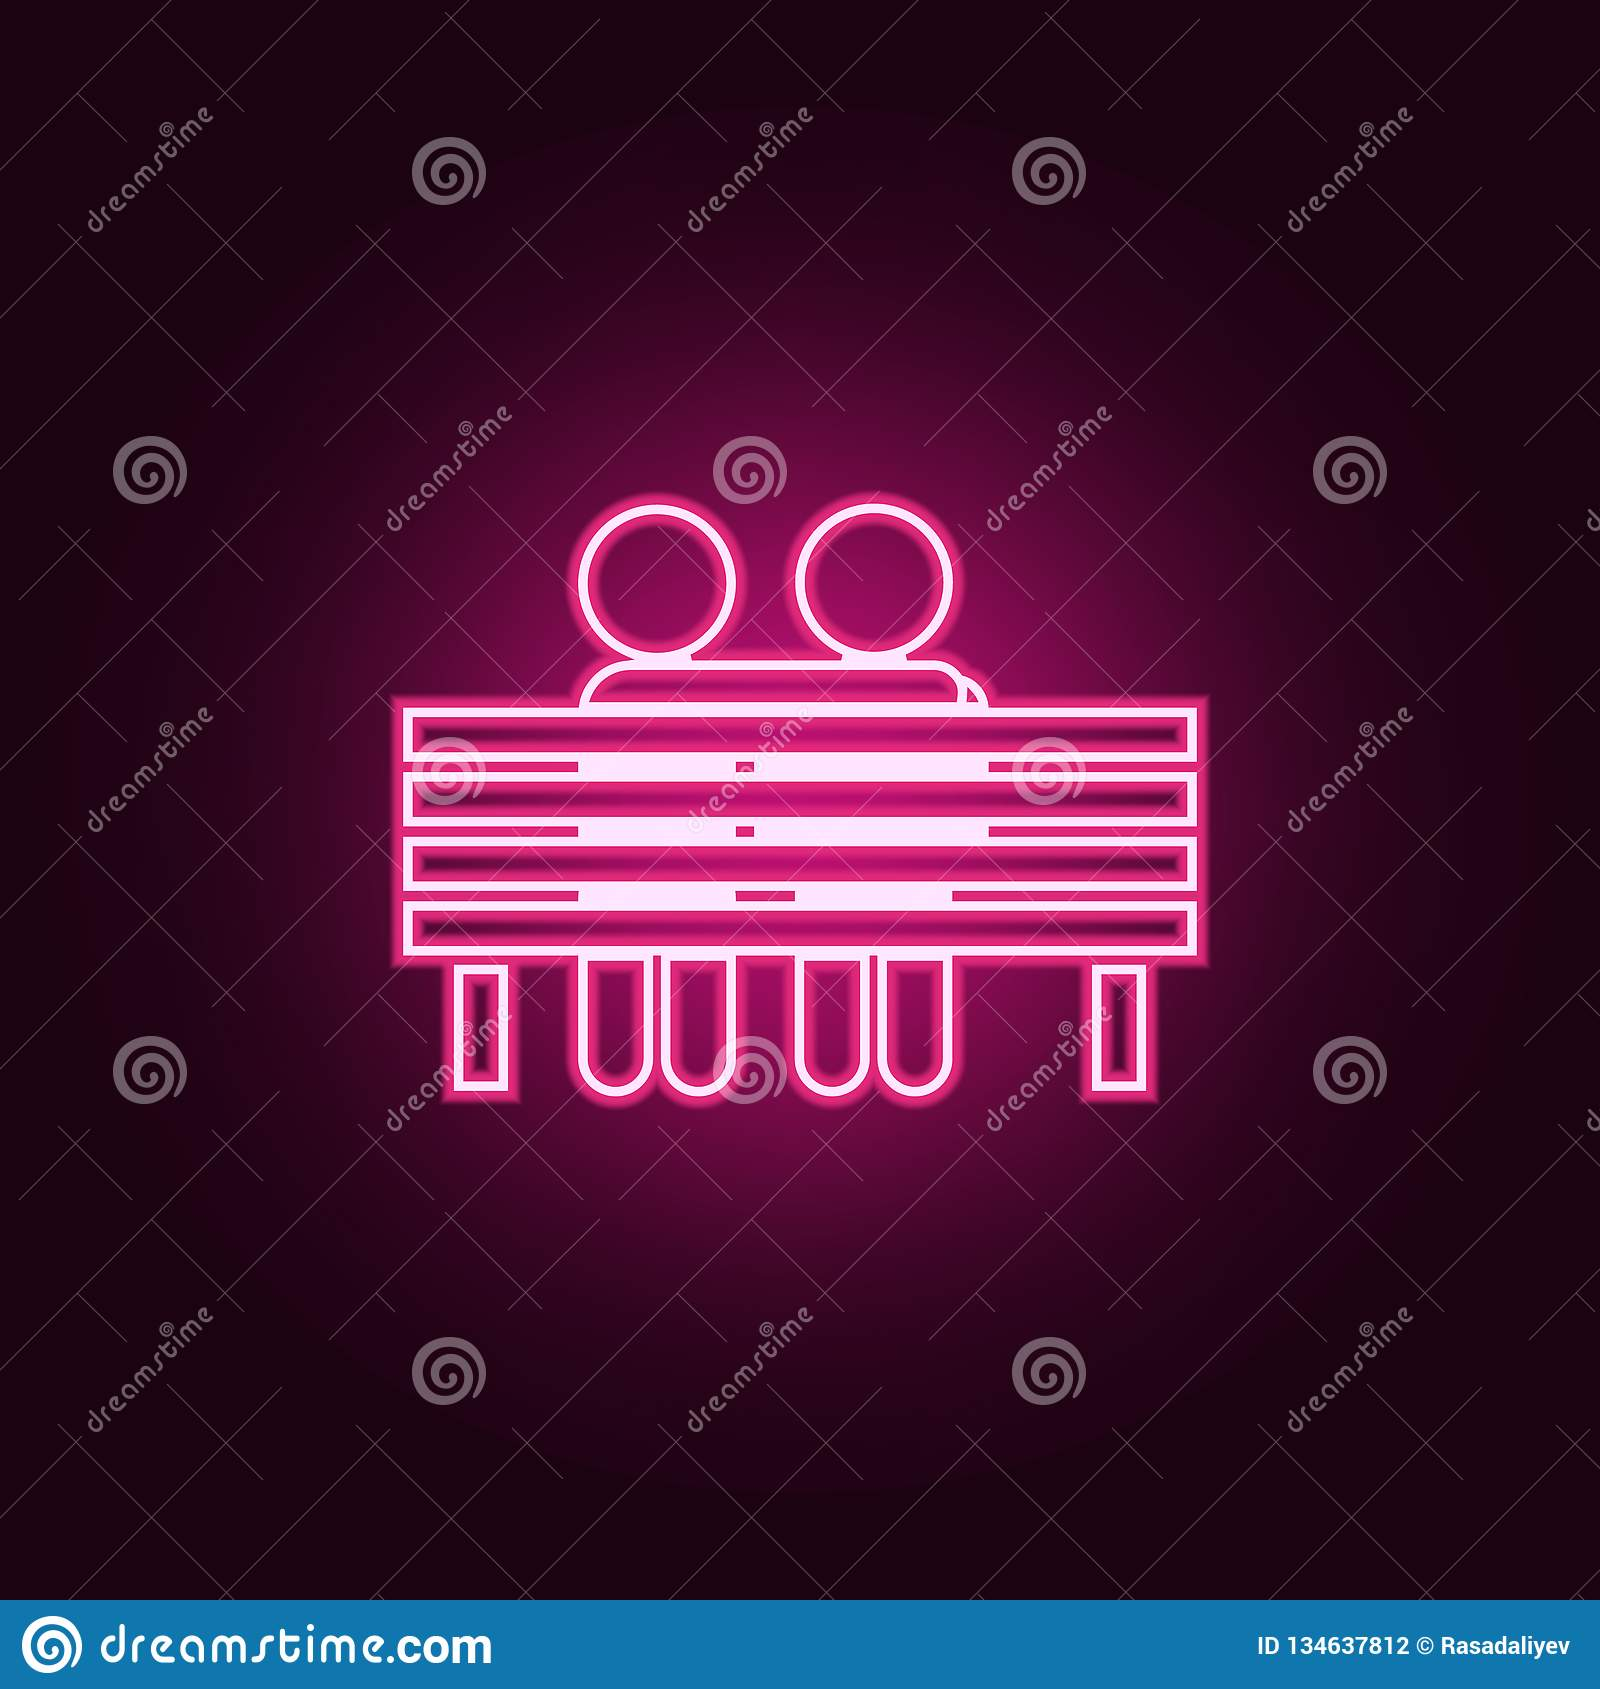 lovers sit on a bench icon. Elements of Valentine in neon style icons. Simple icon for websites, web design, mobile app, info